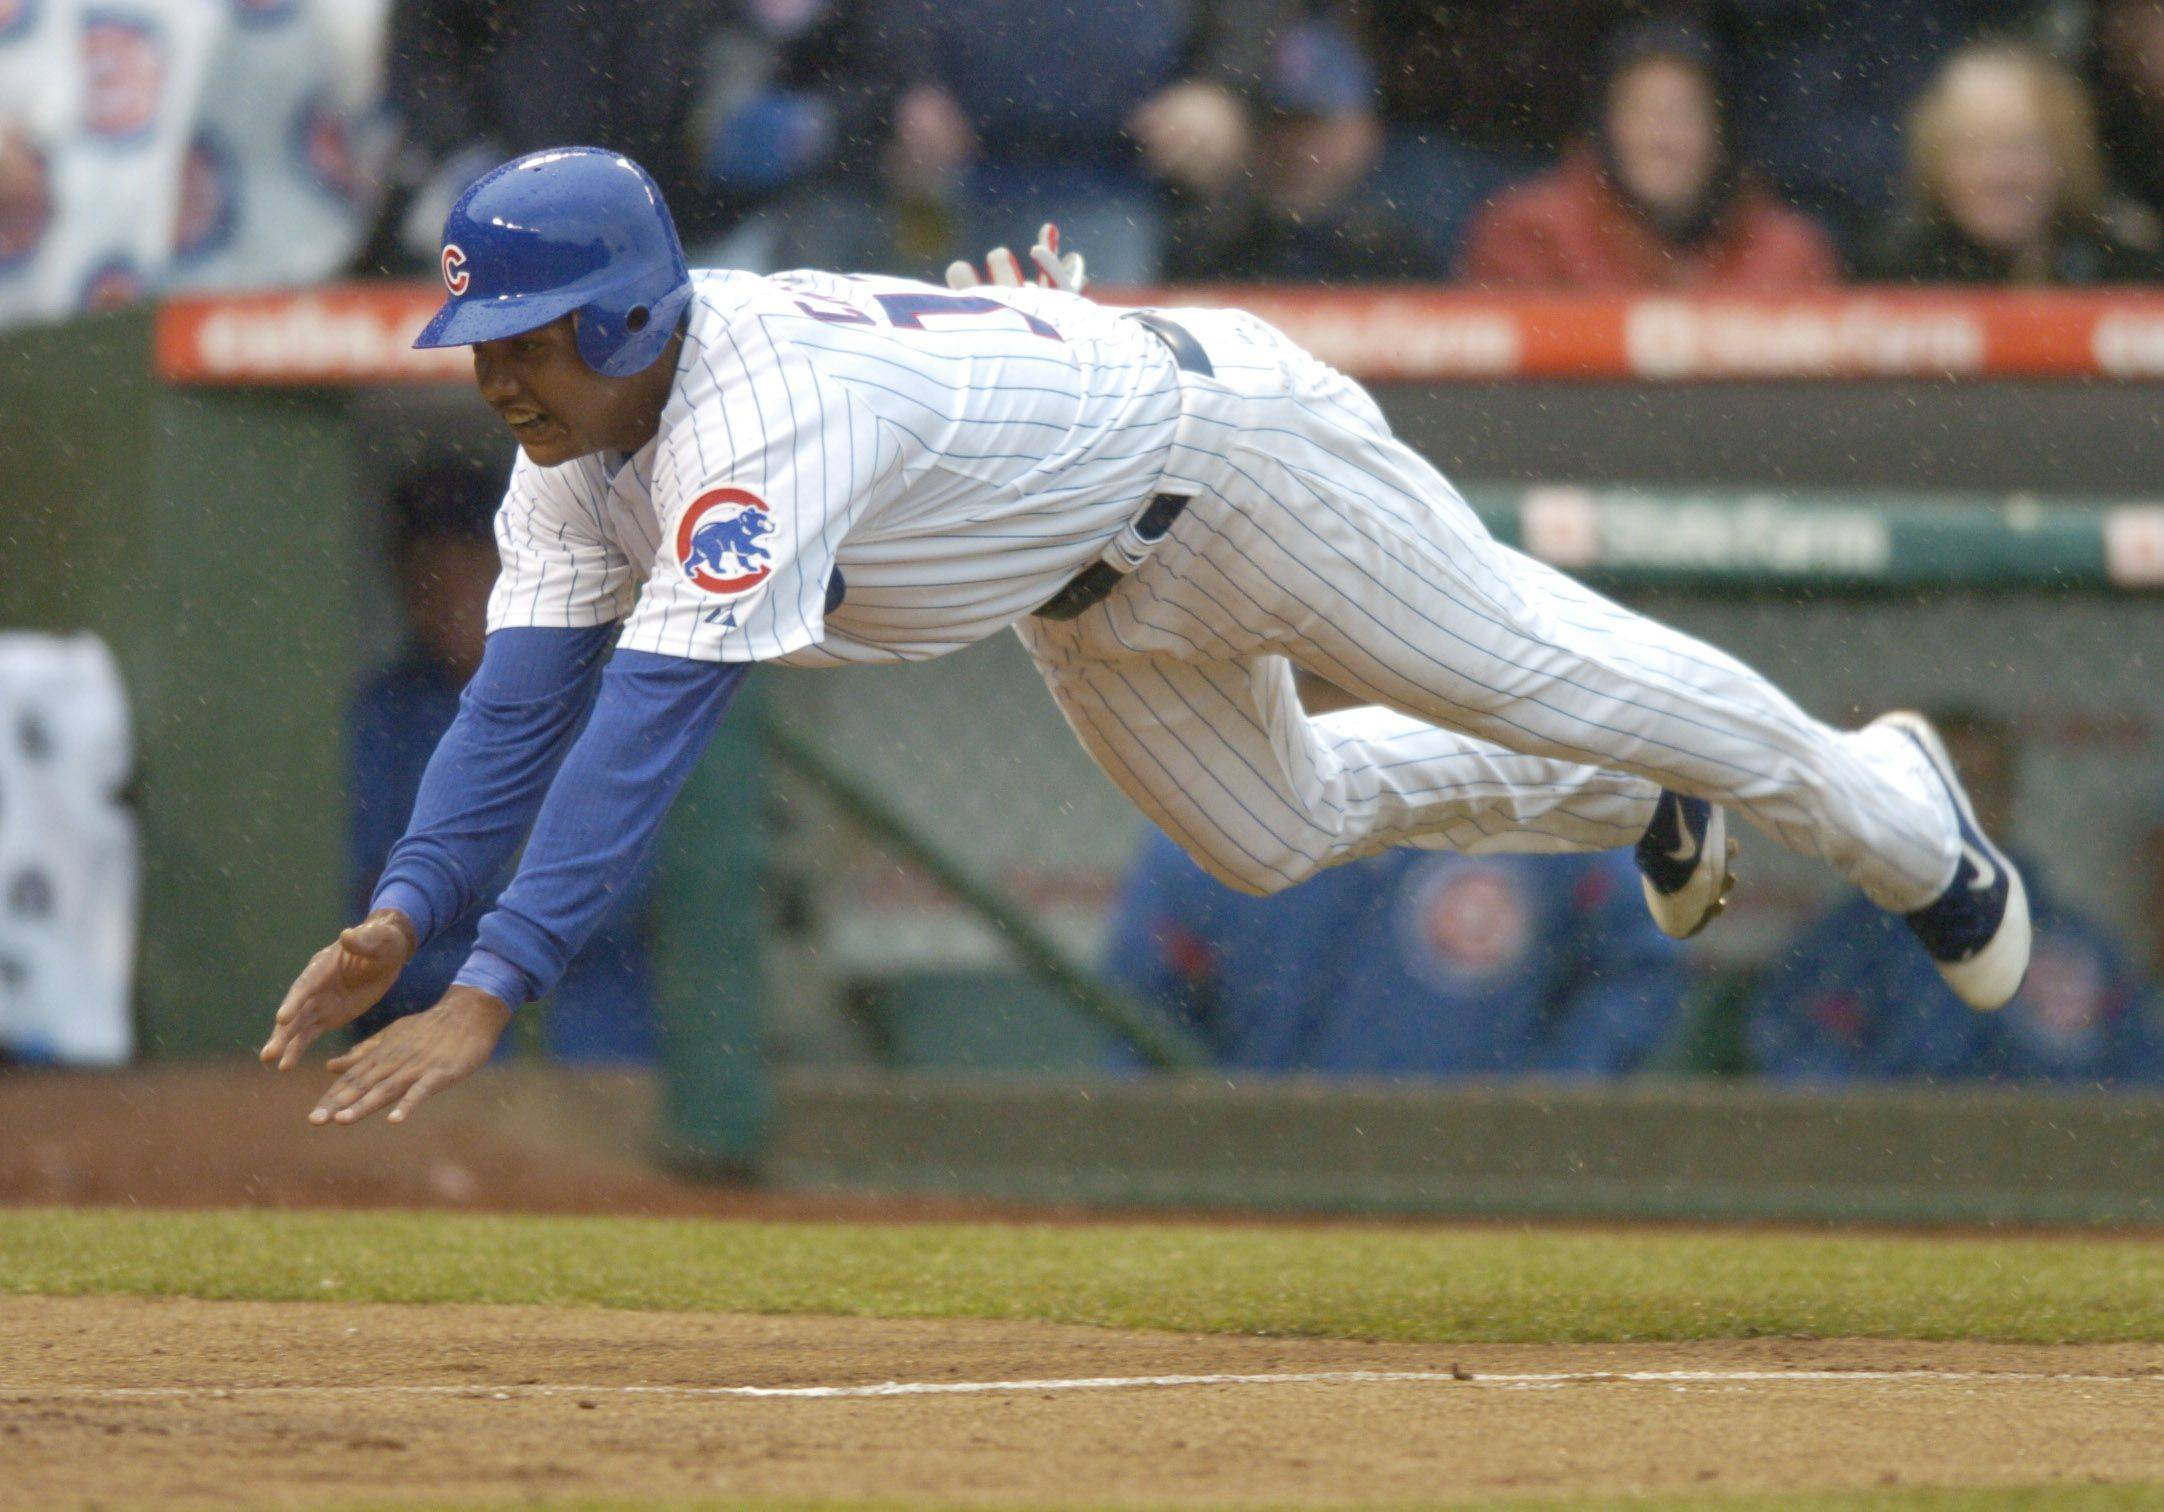 Starlin Castro of the Cubs dives toward the plate as he scores the game's first run .